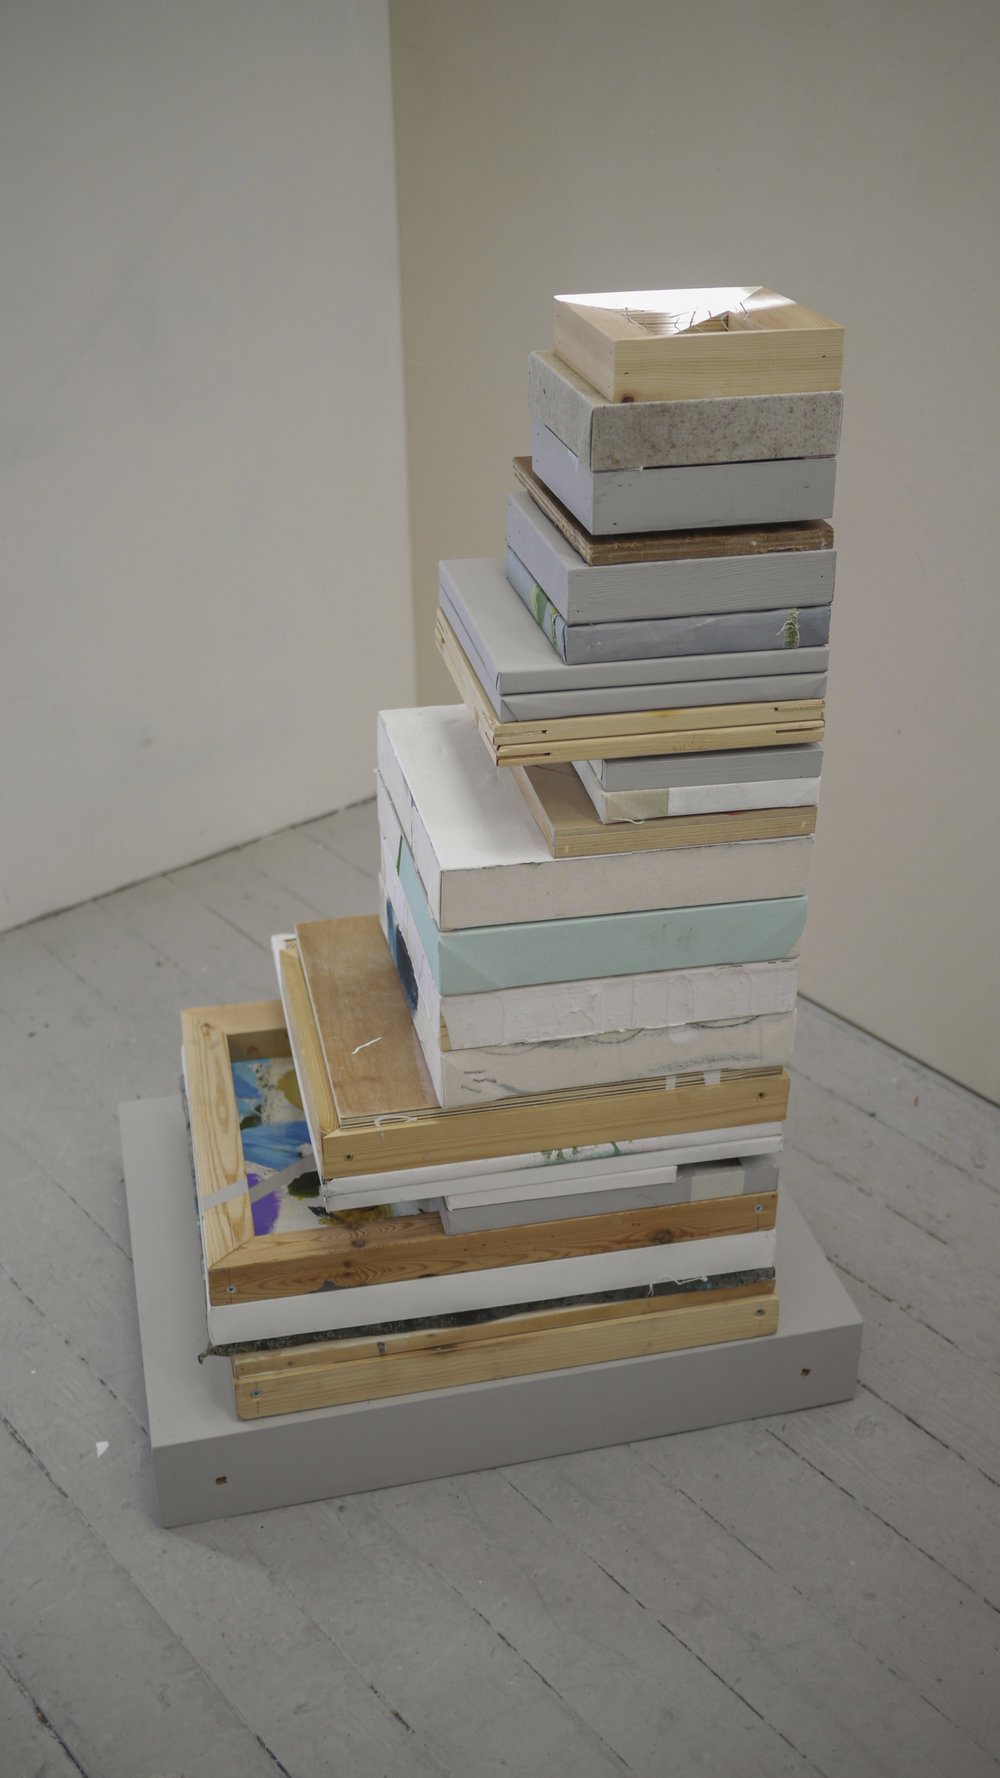 Ally McGinn (2017)  Stacked Balance.  Paintings on plinth. Size varies.